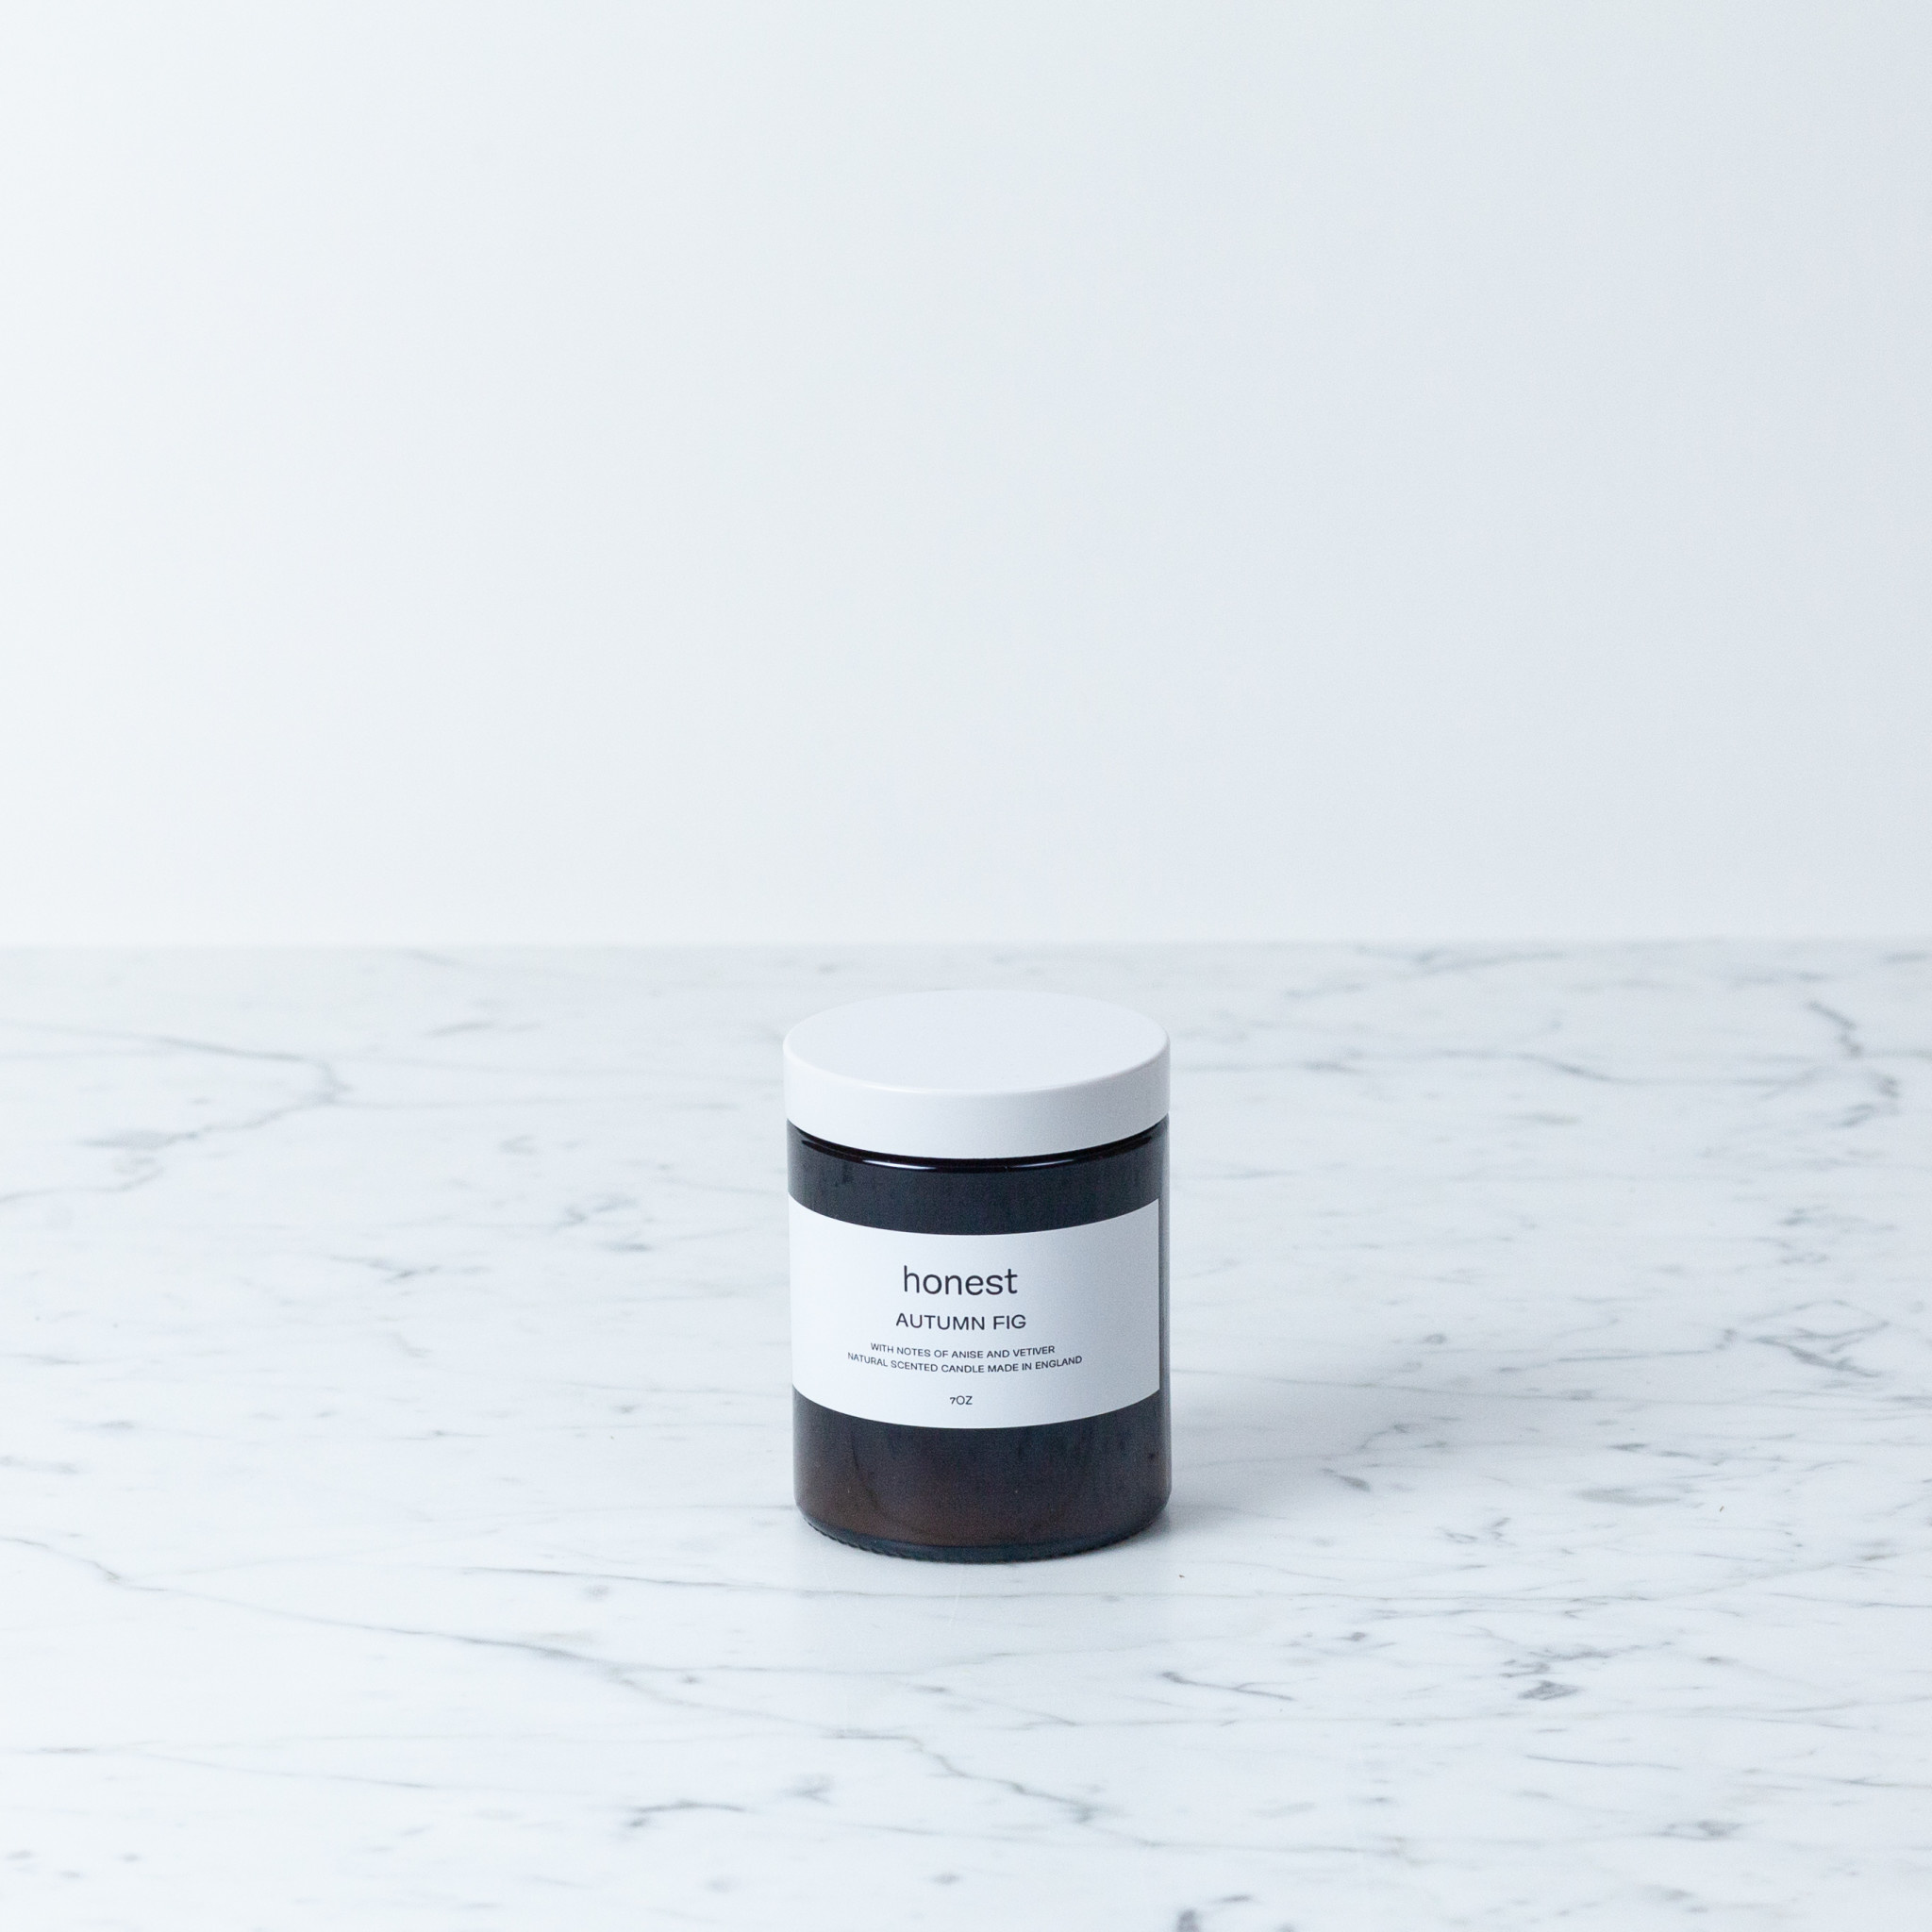 Honest Autumn Fig Candle - 7 oz